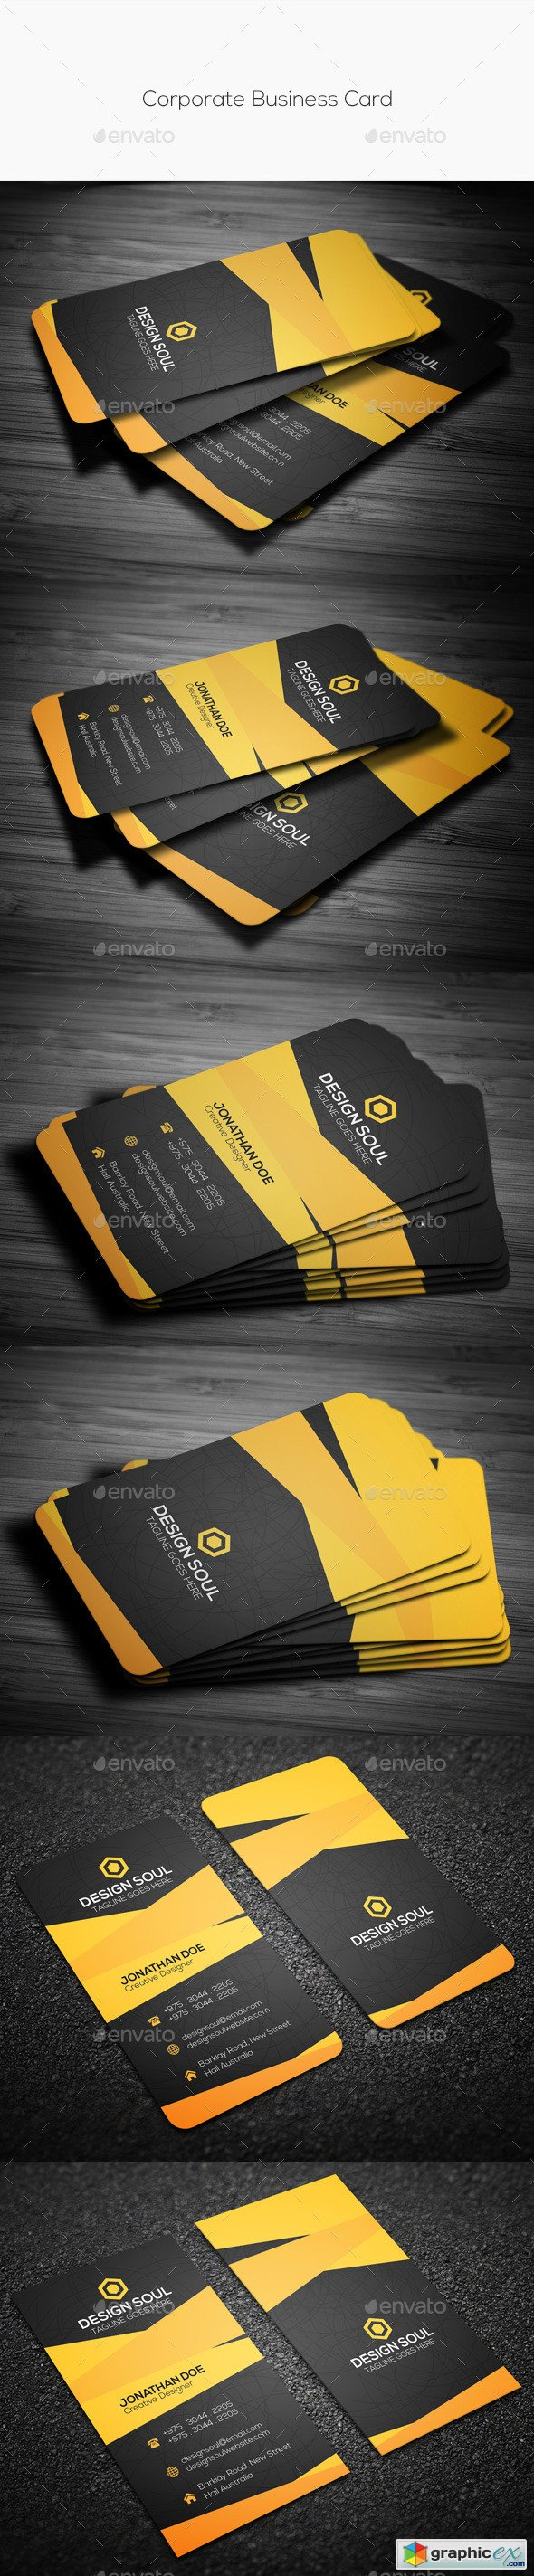 Corporate Business Card 10368018